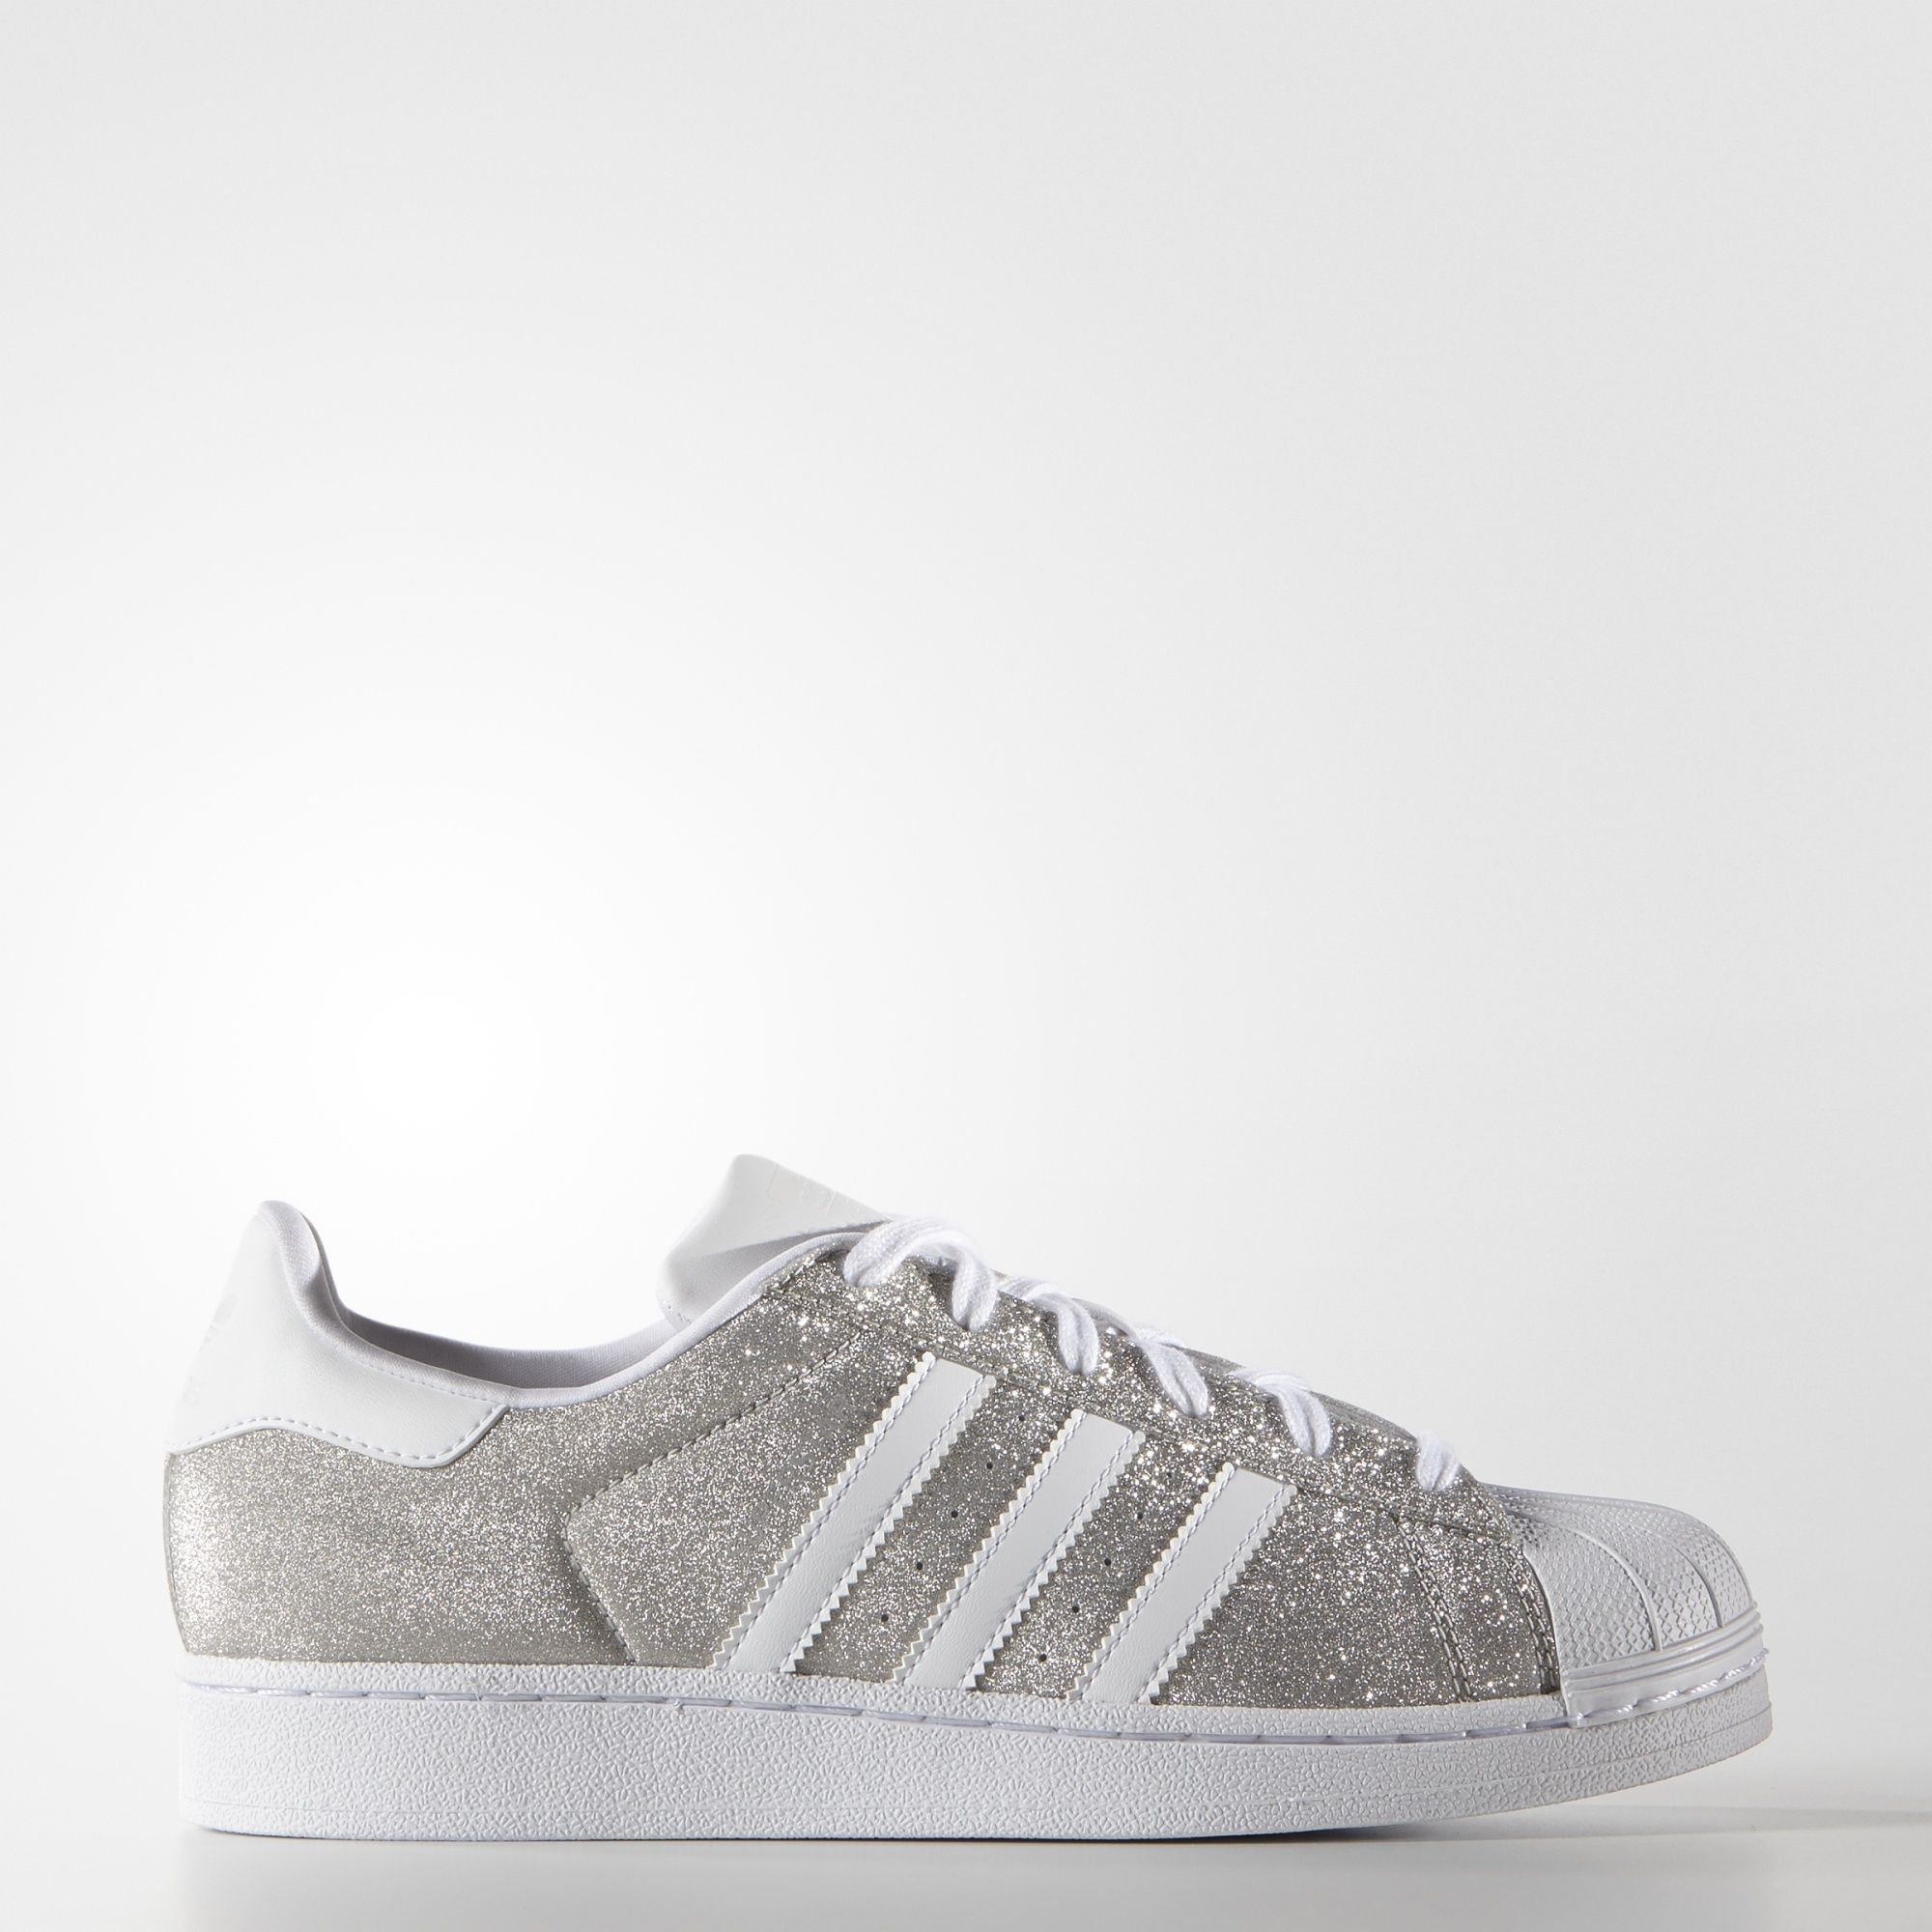 The adidas Superstar shoe stepped onto basketball courts in 1970, earning a  sterling reputation in